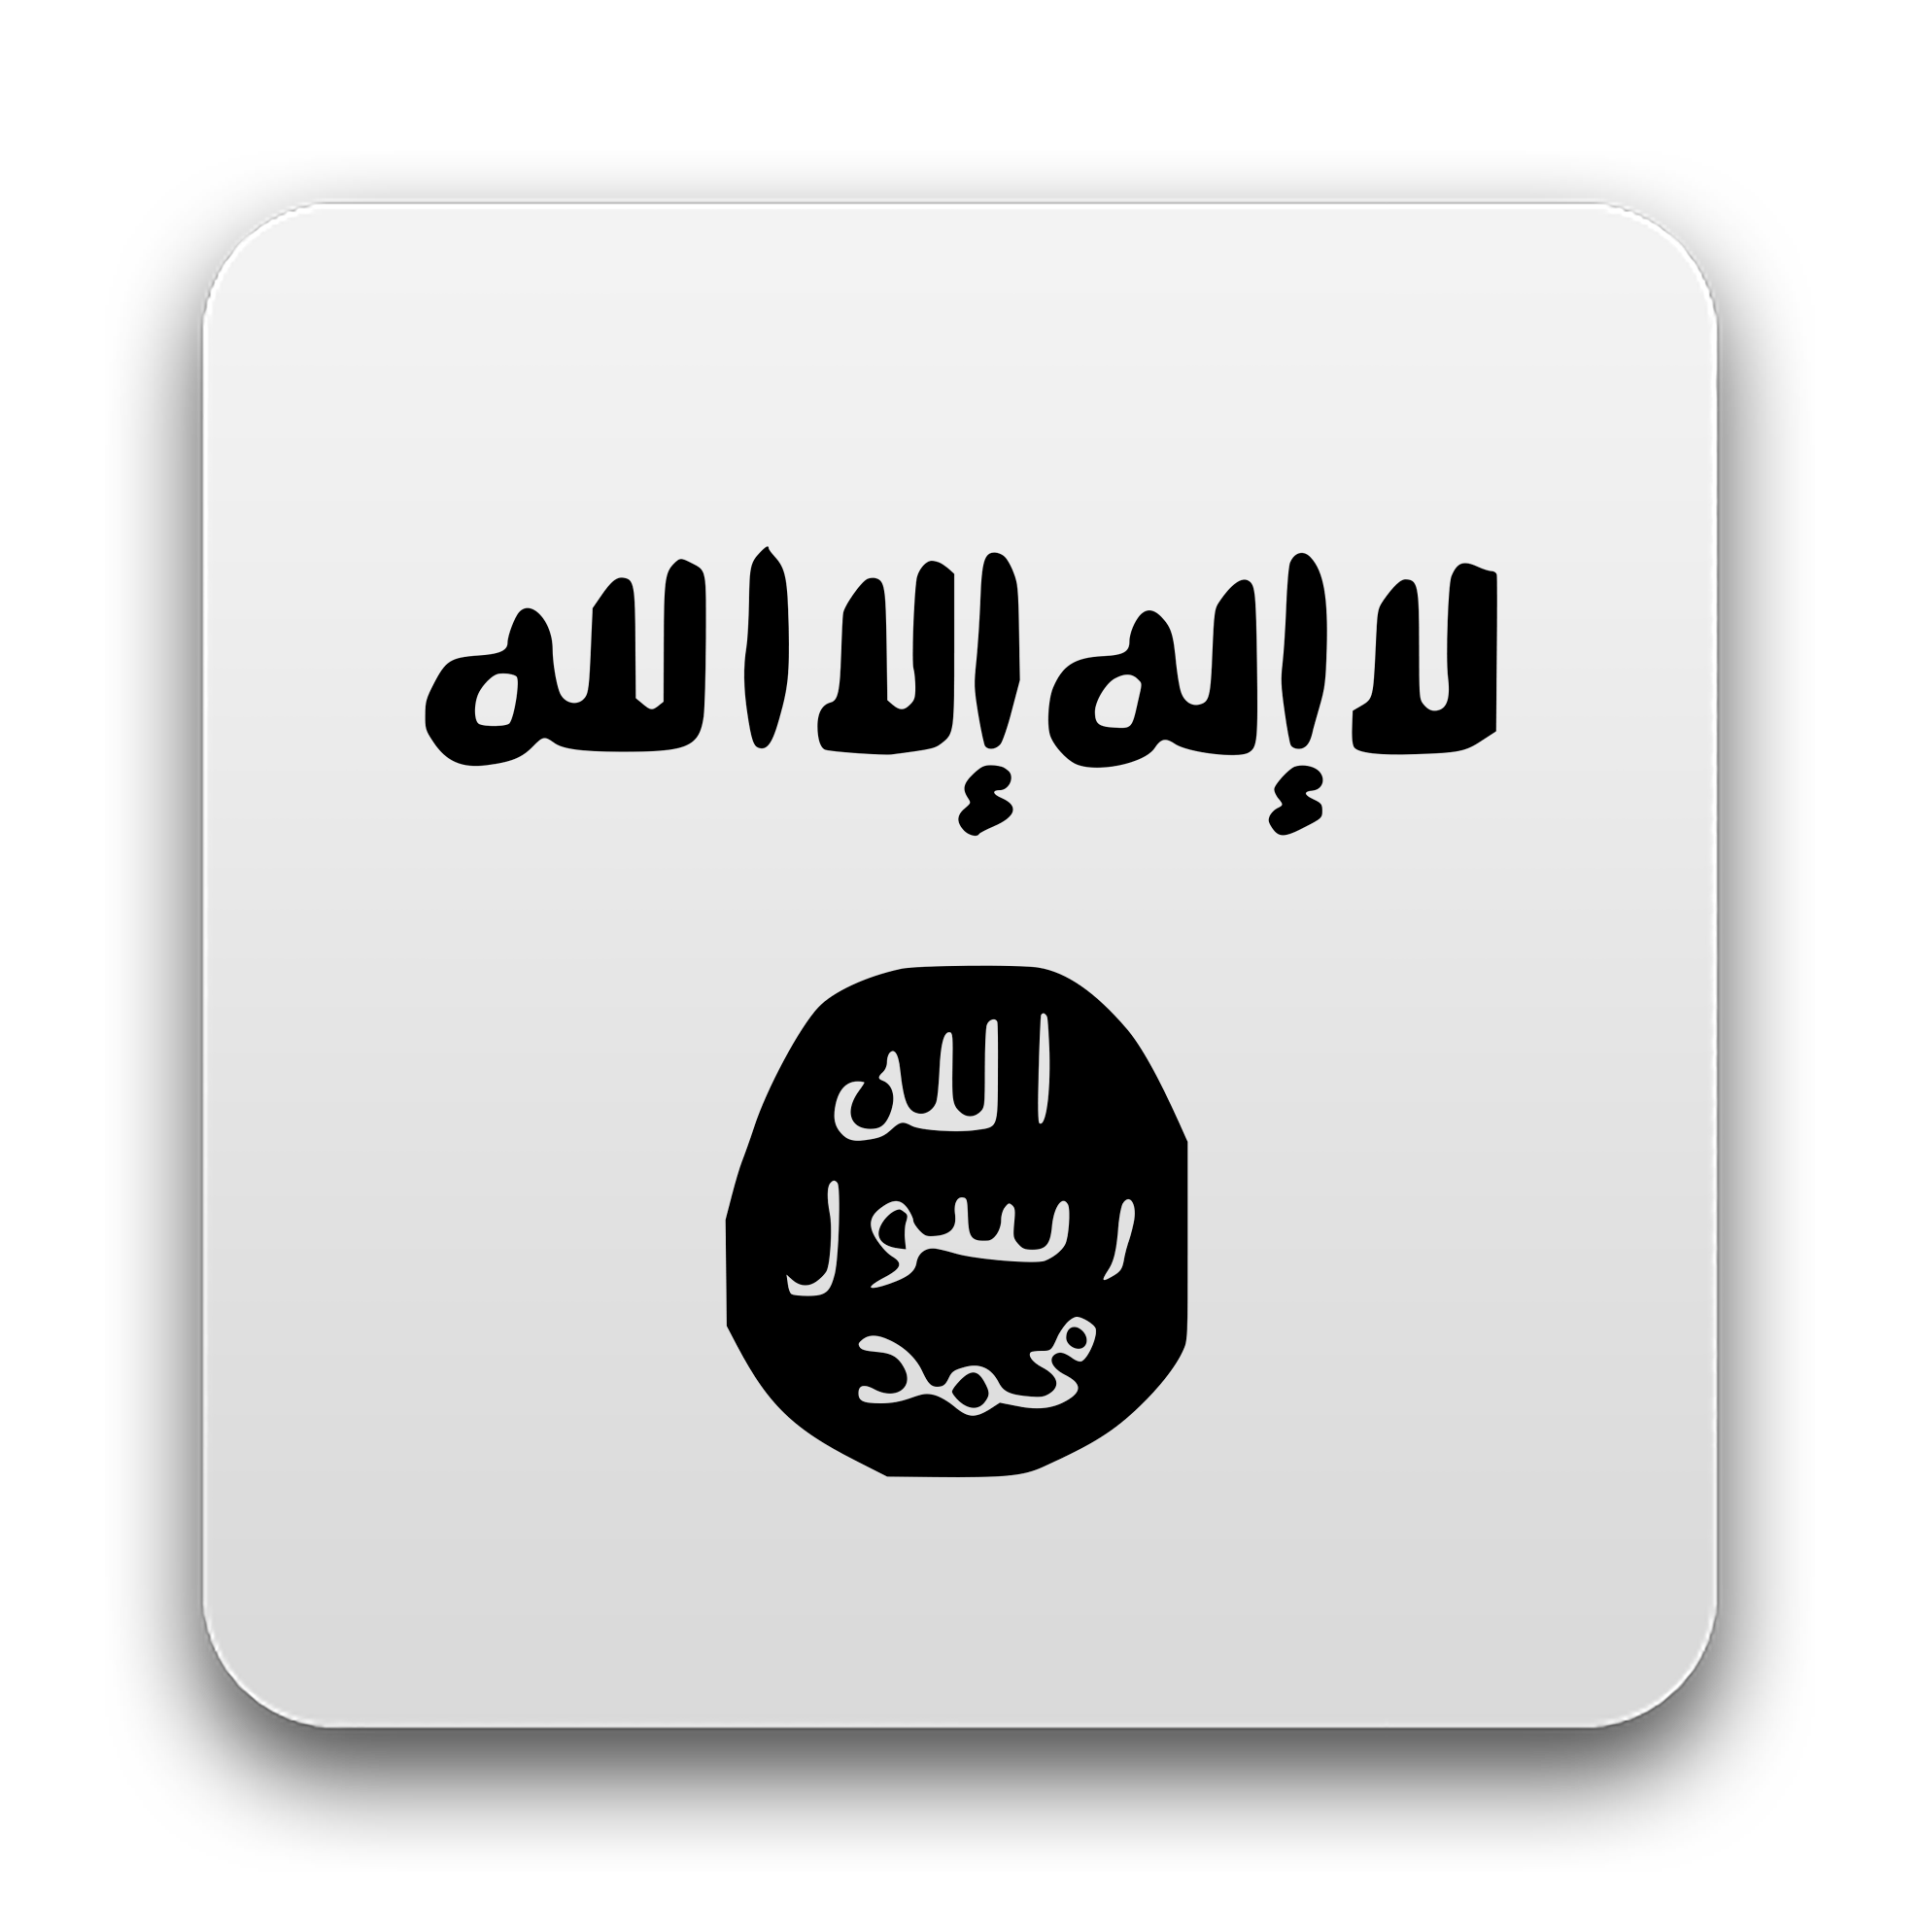 Isis Computer Wallpapers, Desktop Backgrounds